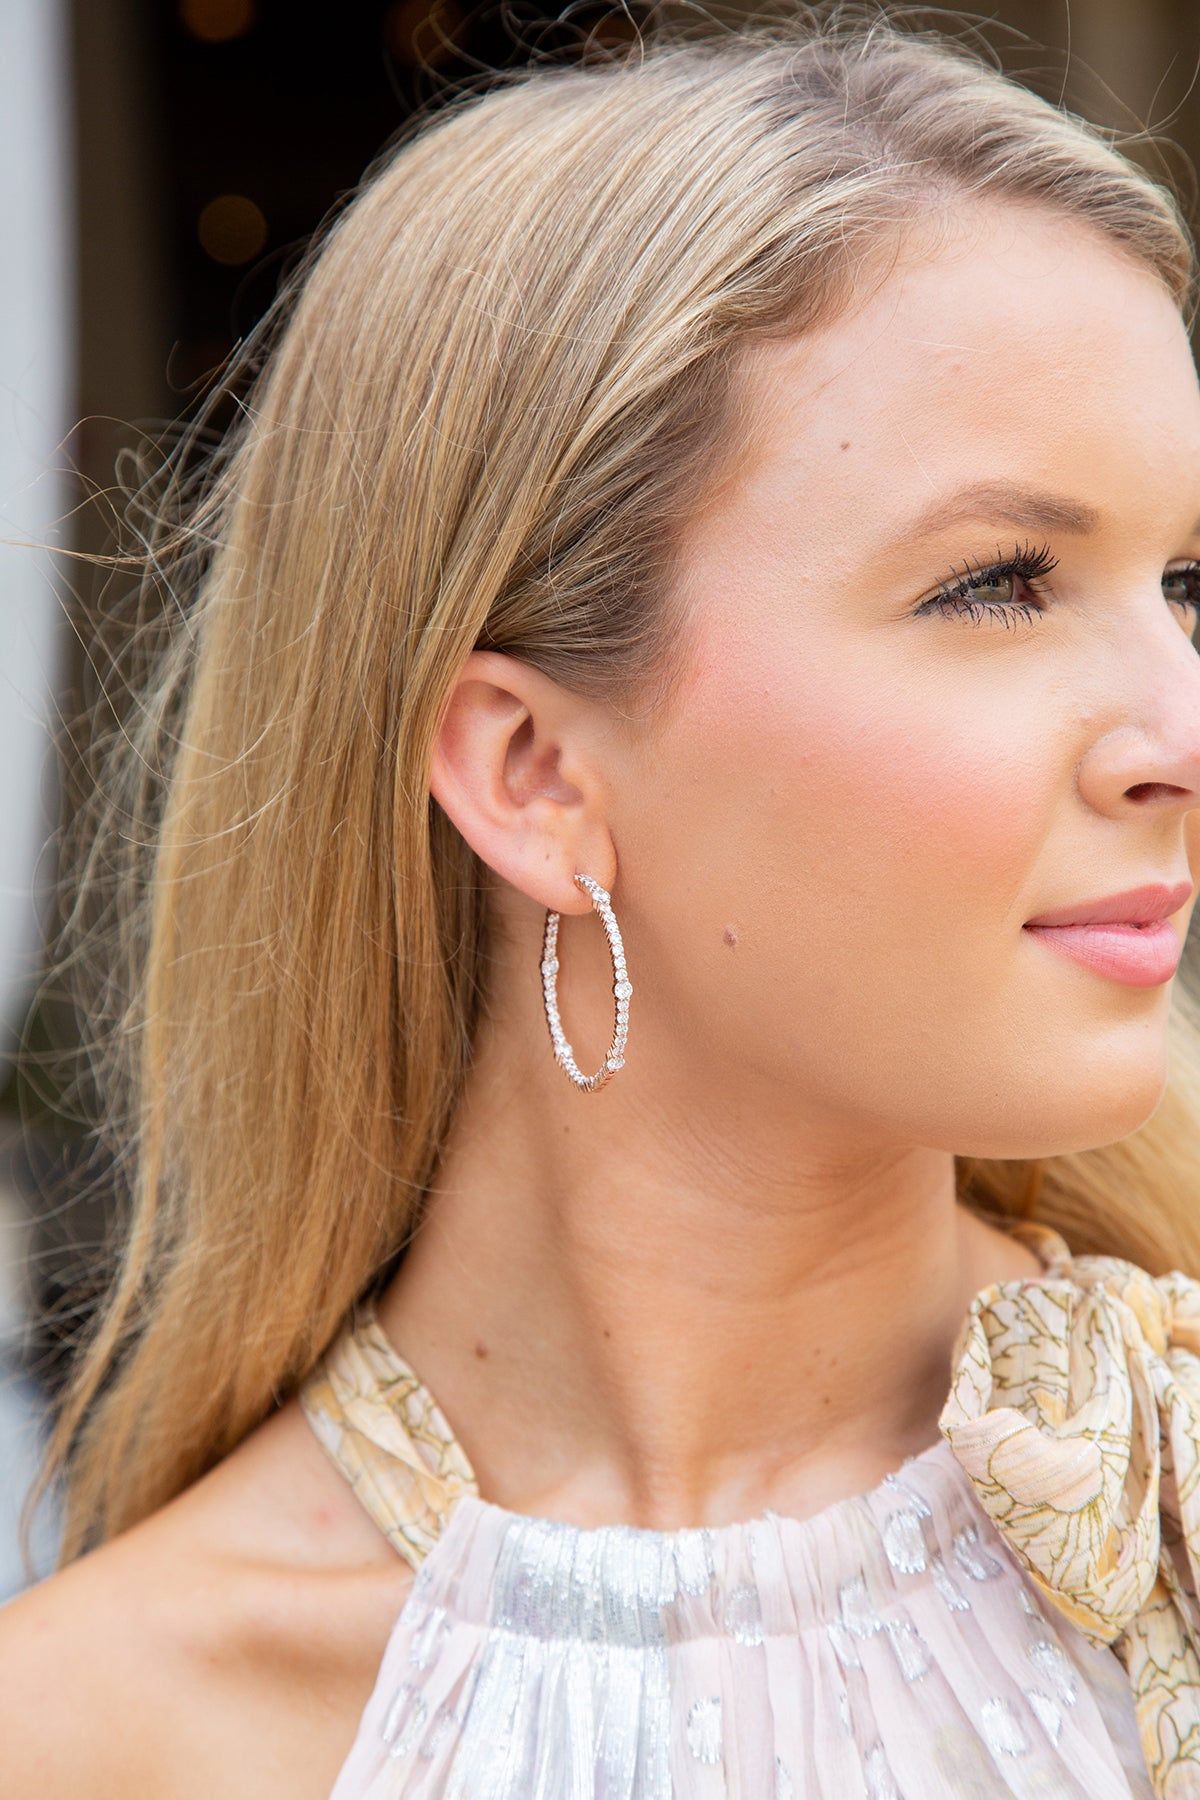 Wild Child Hoops Earrings